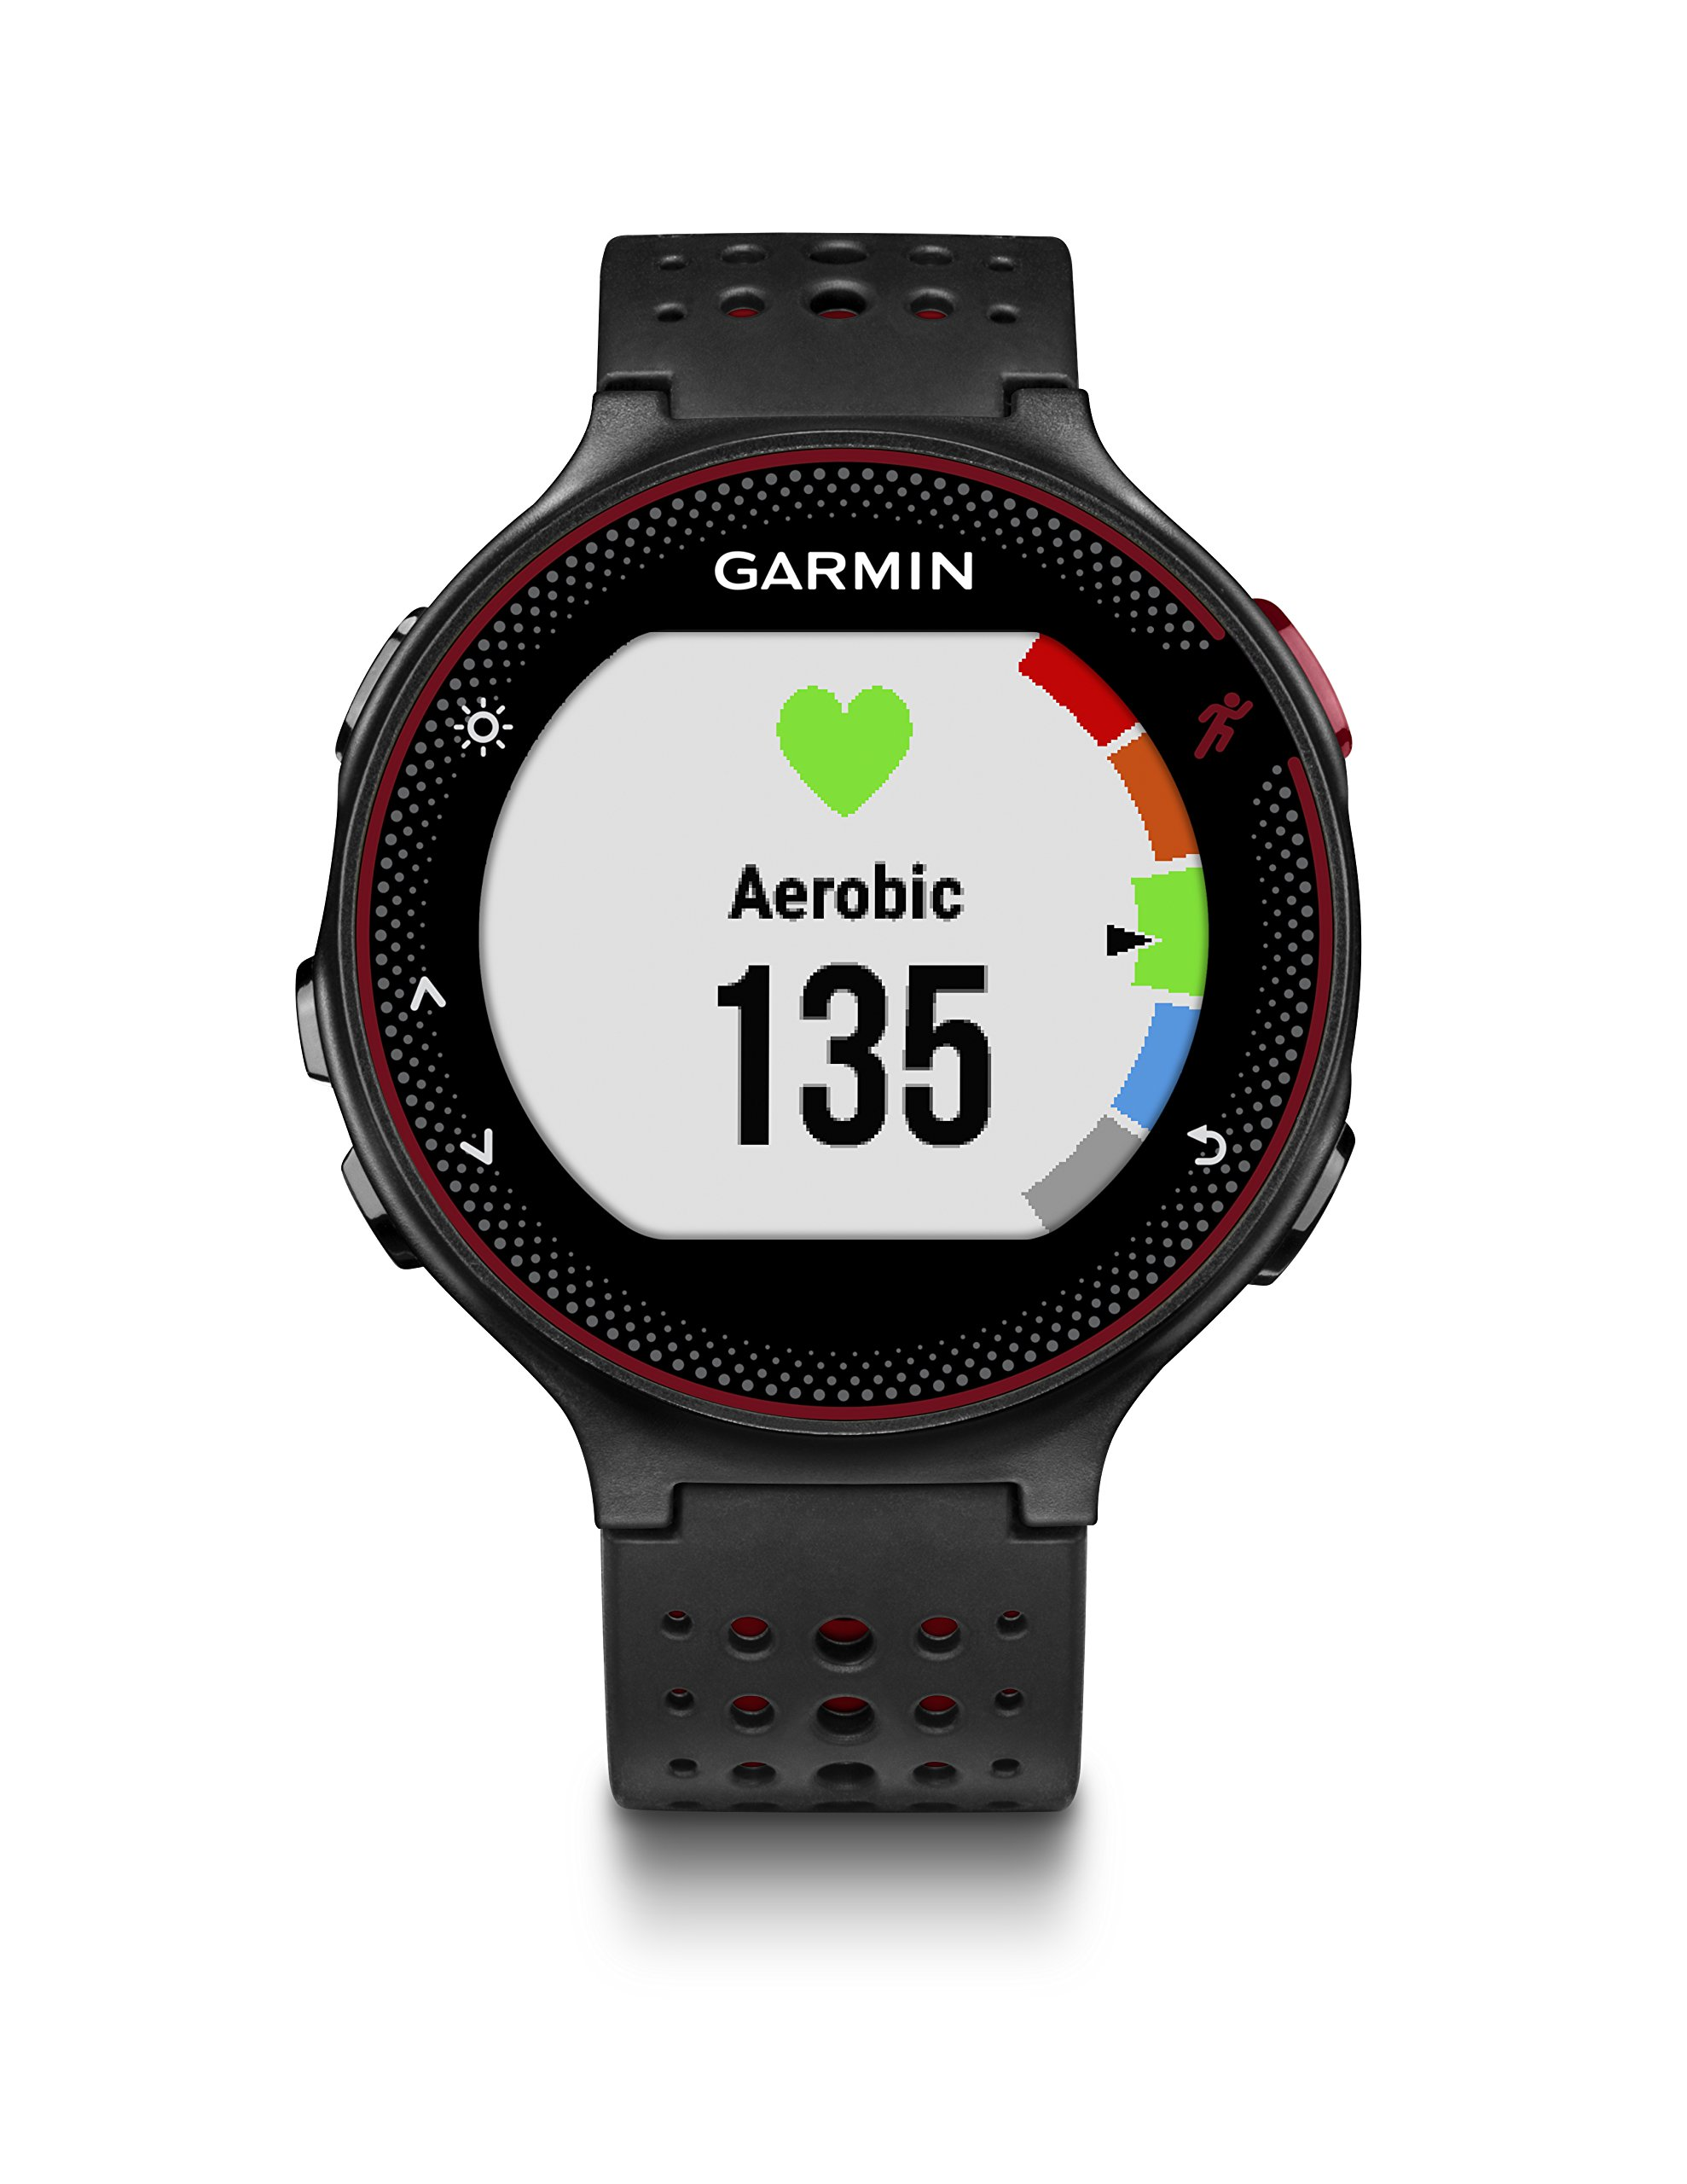 Garmin Forerunner 235 (Marsala) GPS Running Watch Bundle | with HD Screen Protector Film (x4) & PlayBetter USB Car/Wall Adapters | On-Wrist Heart Rate | Elevate Heart Rate Technology | VO2 Max by PlayBetter (Image #3)